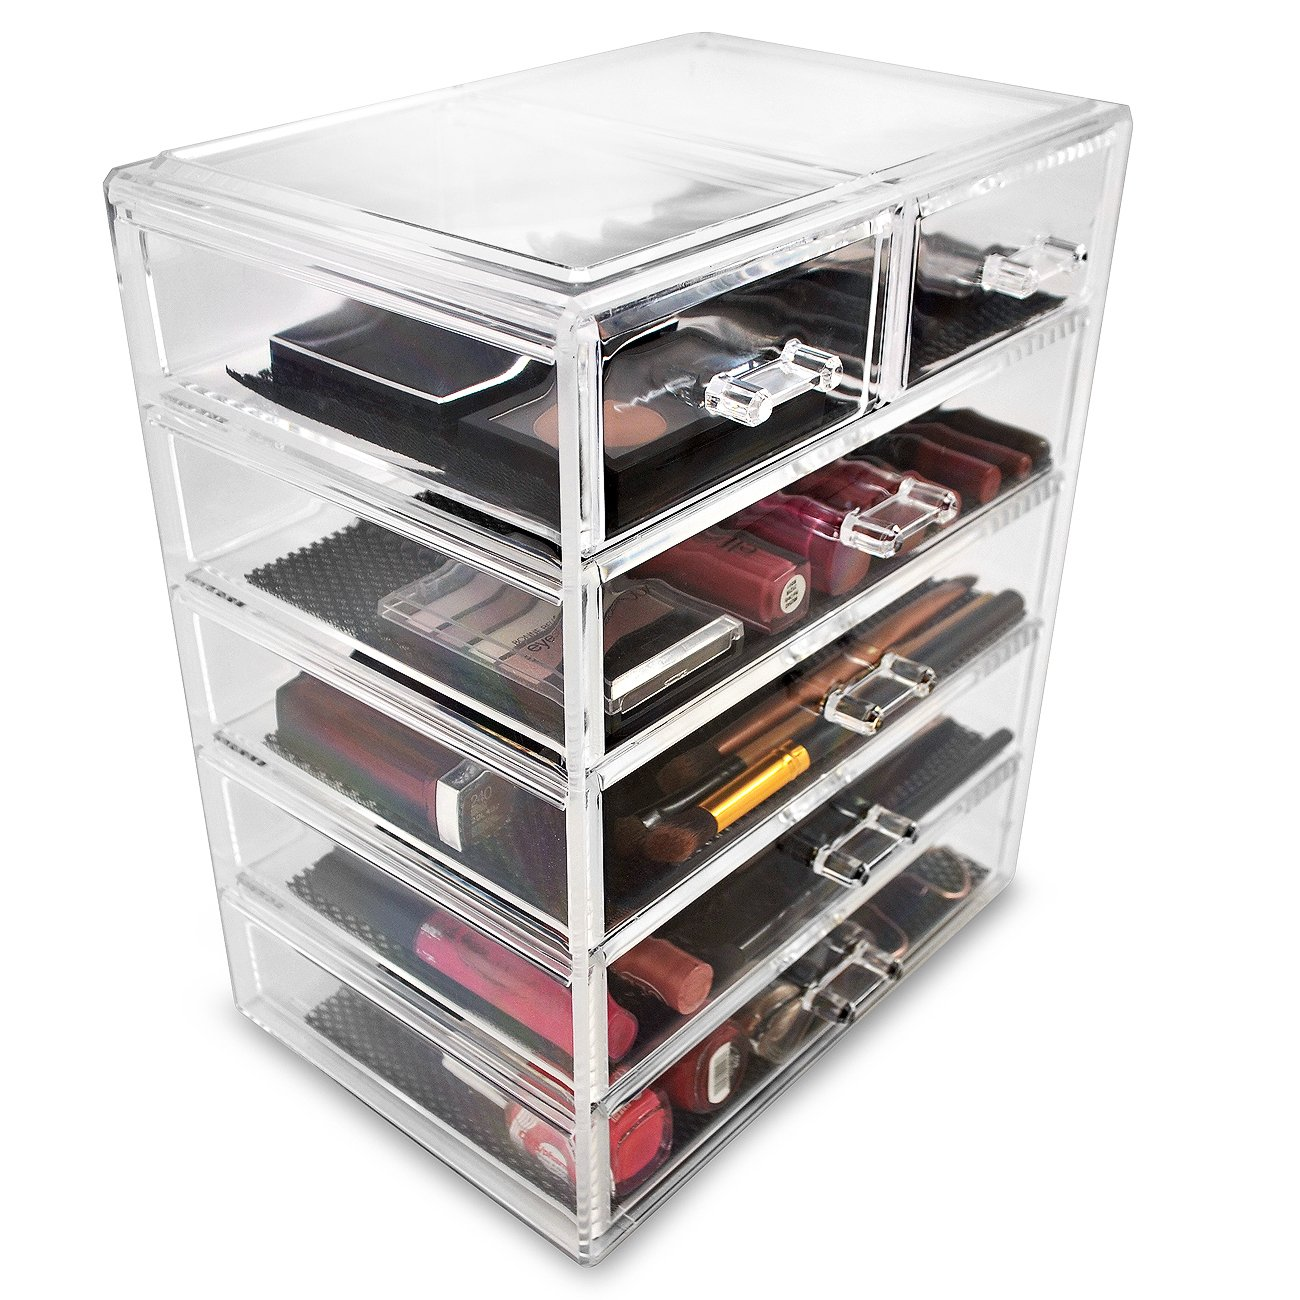 Amazon.com: Sorbus Cosmetics Makeup and Jewelry Big Storage Case Display -  Stylish Vanity, Bathroom Case (4 Large, 2 Small Drawers, Clear): Home &  Kitchen